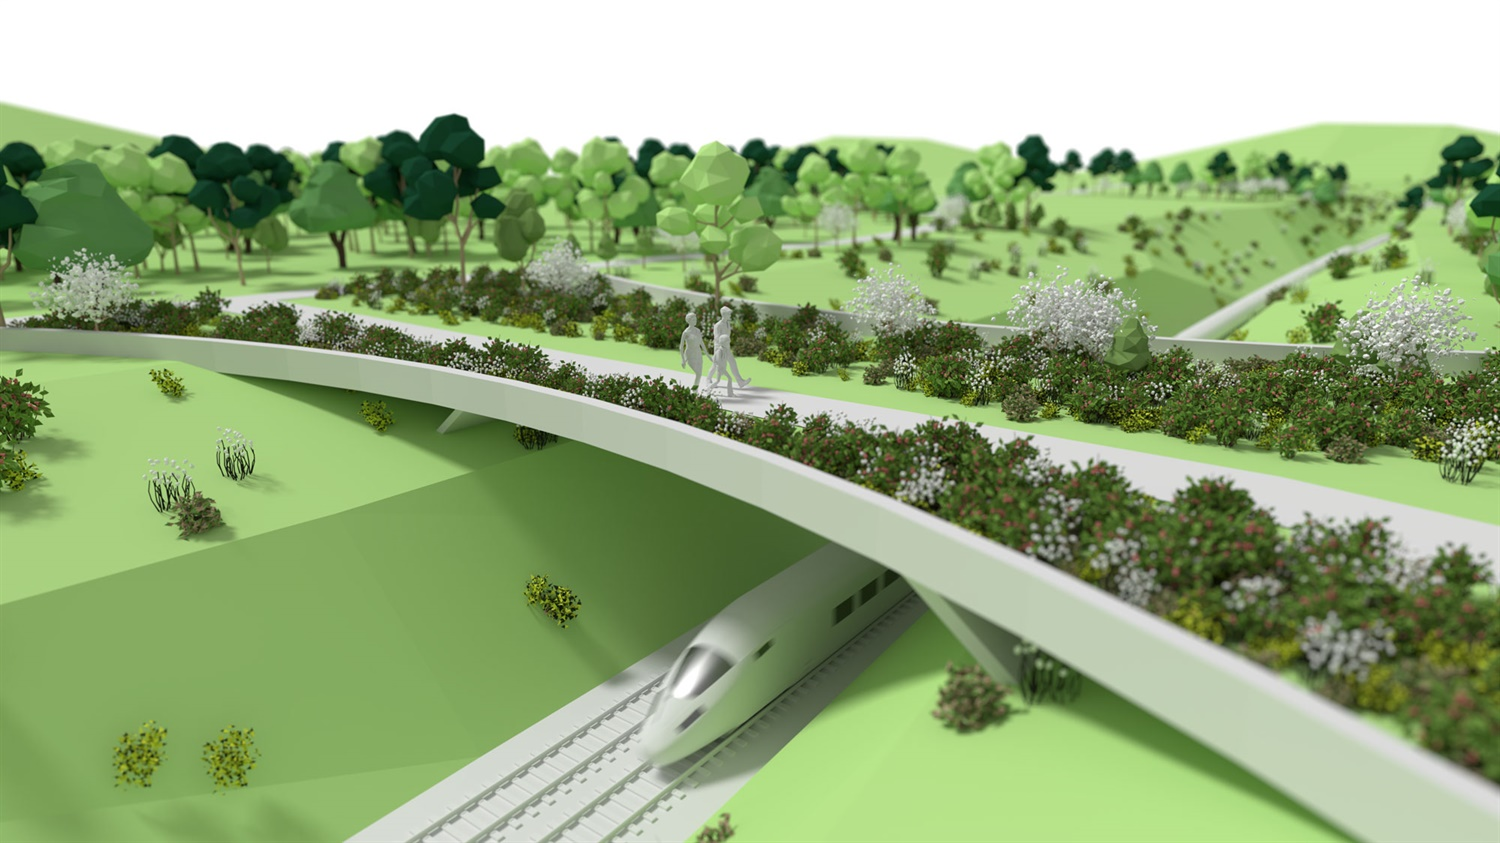 'Green corridor' on the way as HS2 looks to revitalise local environments